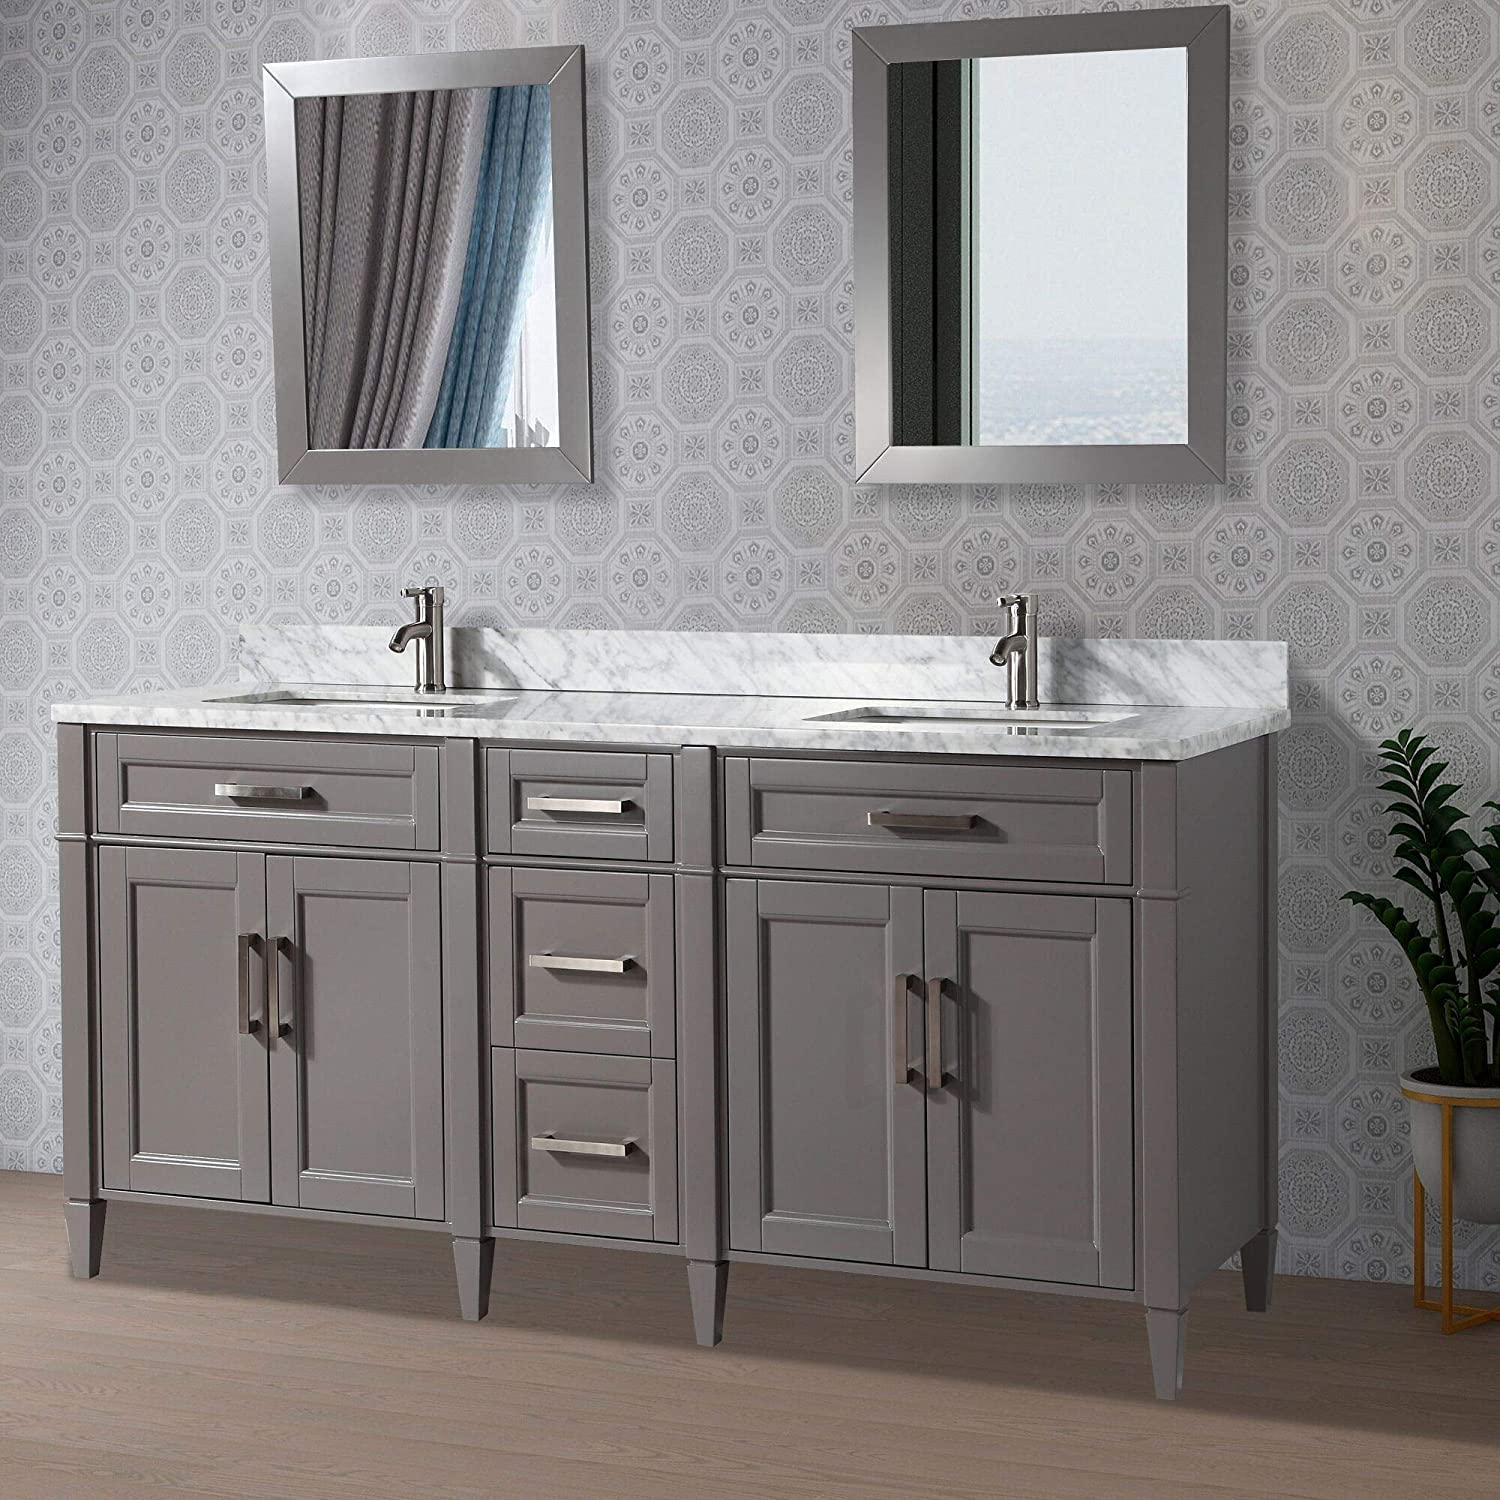 Vanity Art 20 Inches Double Sink Bathroom Vanity Set Carrara Marble Stone  Top Dove Tailed Drawers Soft Closing Doors Under Mount Rectangle Sink ...